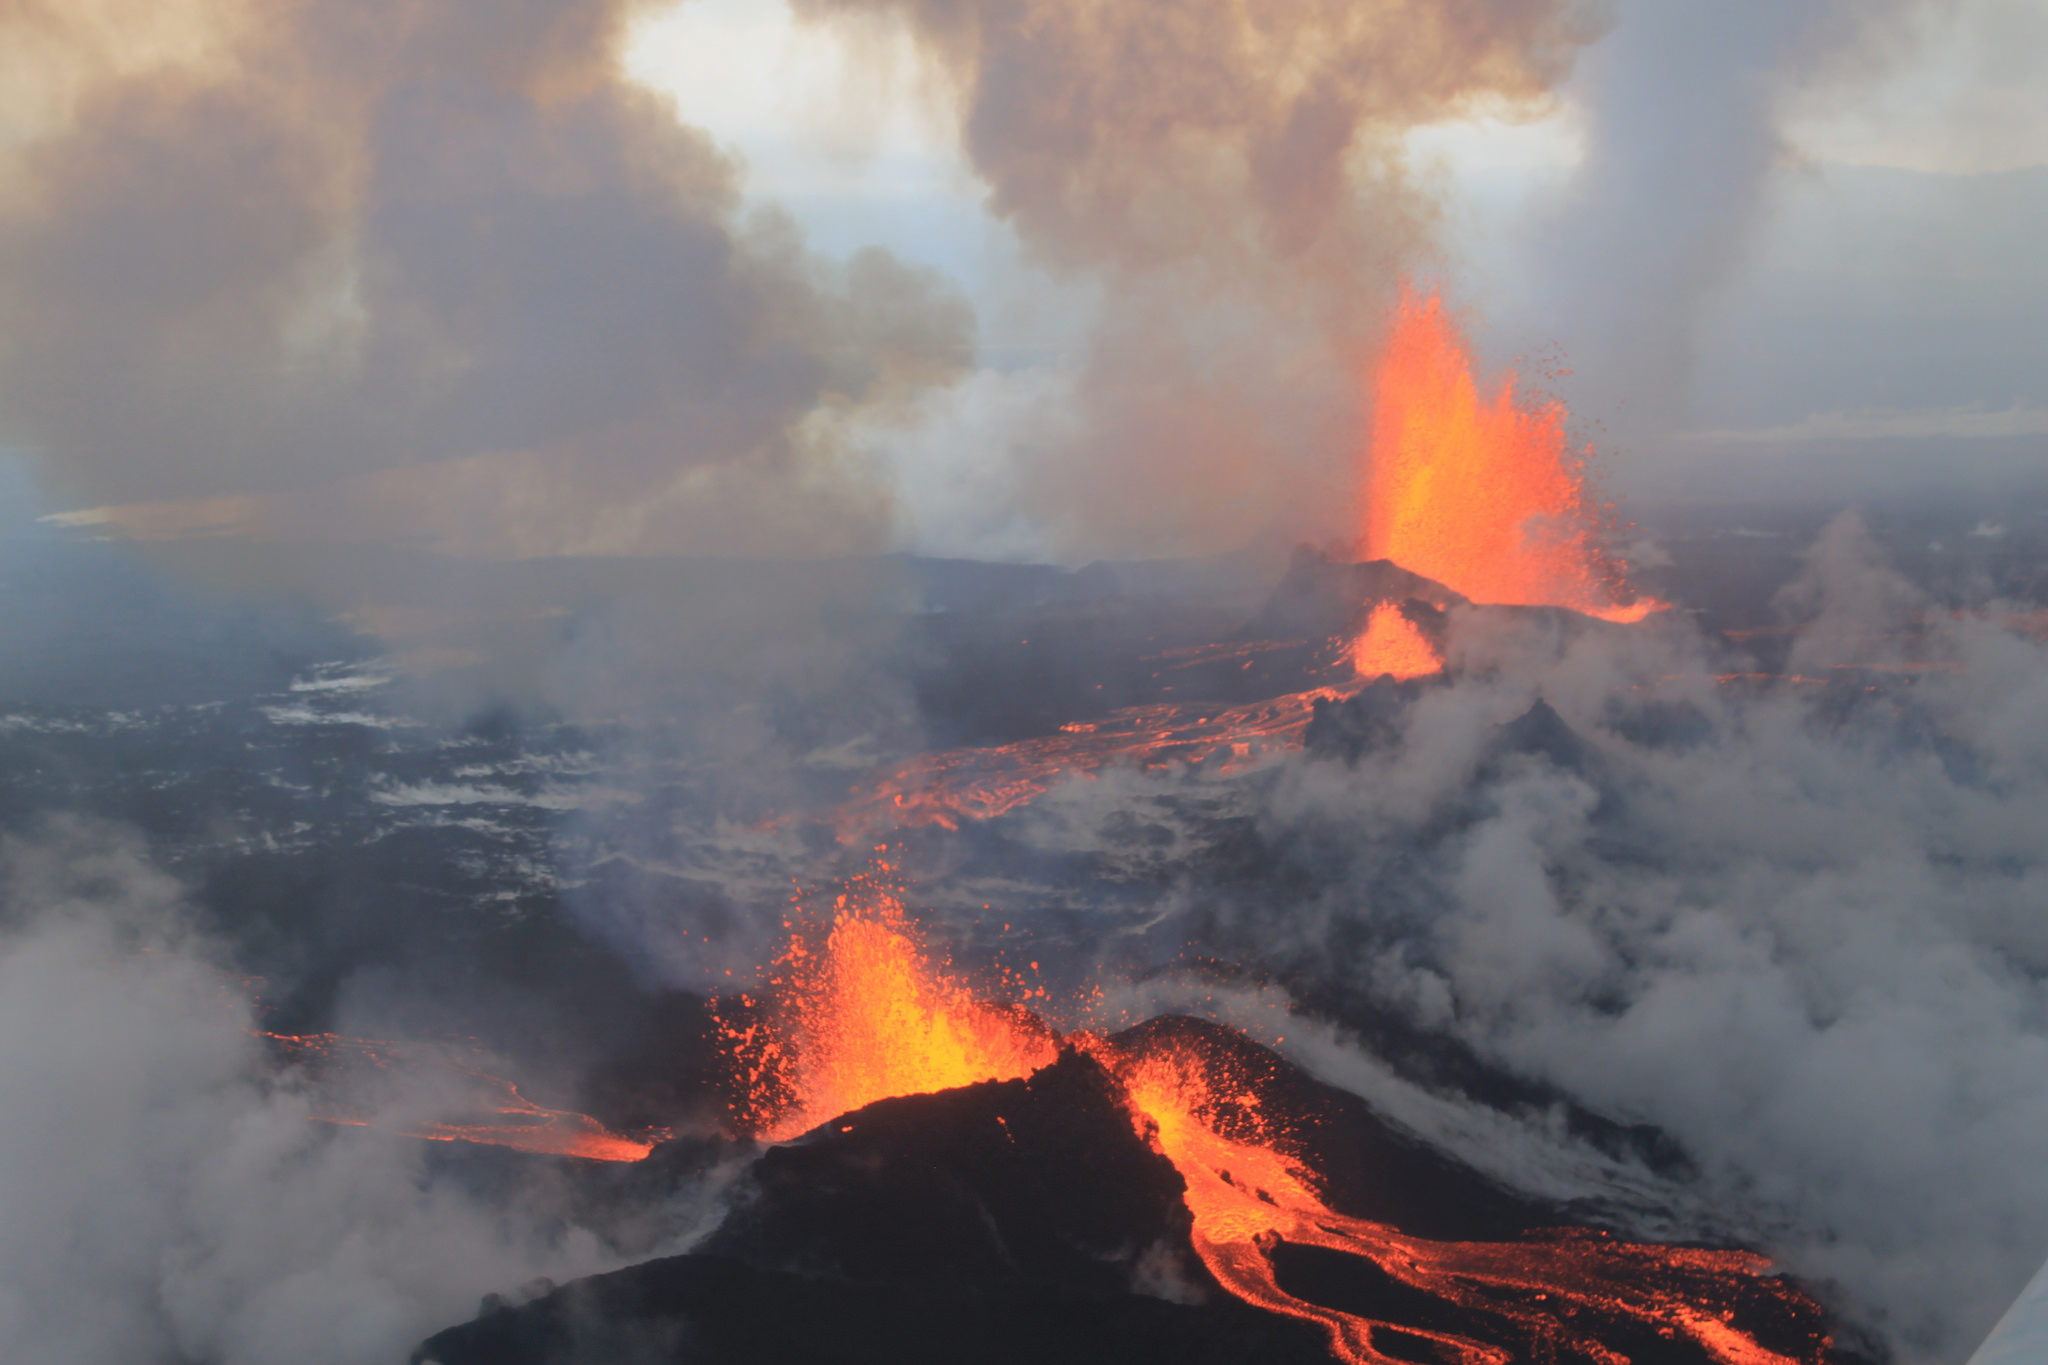 The present and future of Iceland's volcanic eruption